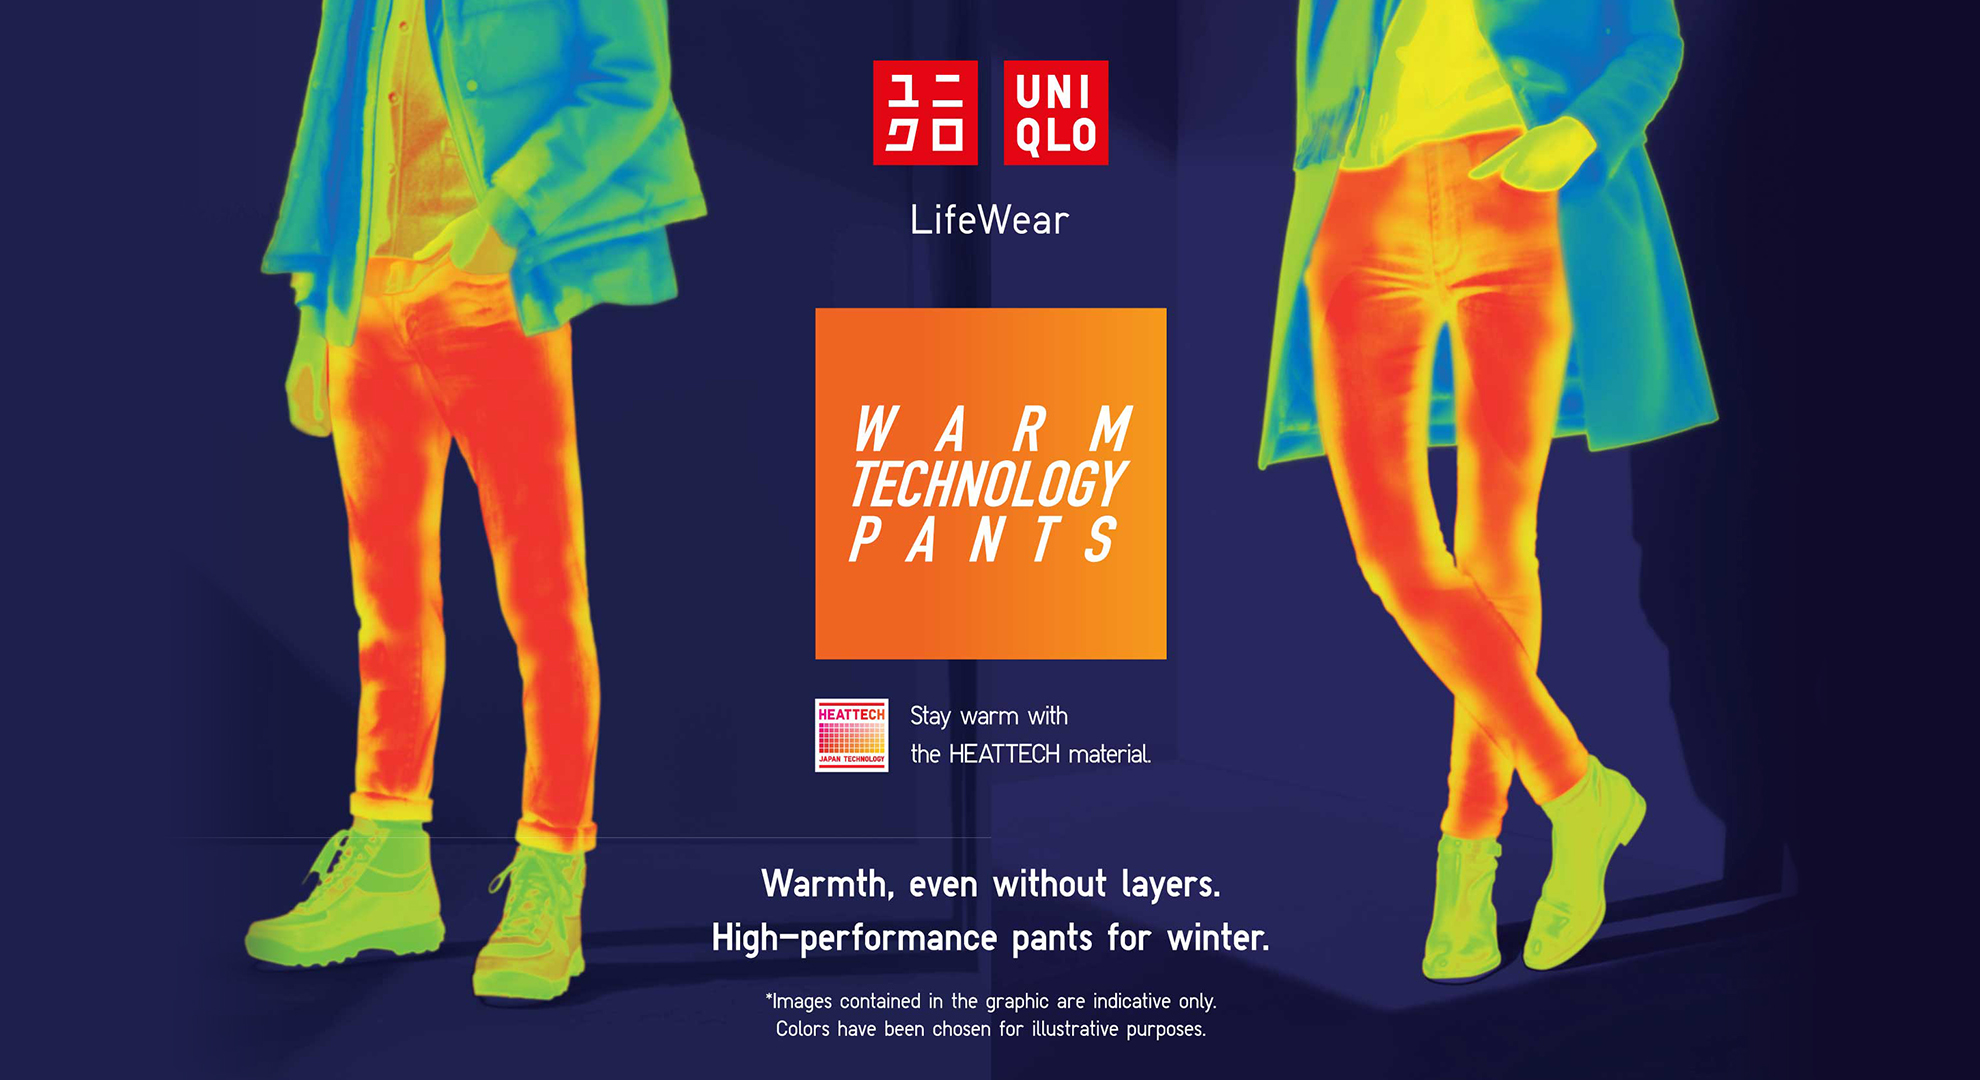 km_website_slider_uniqlo_new_251119_test